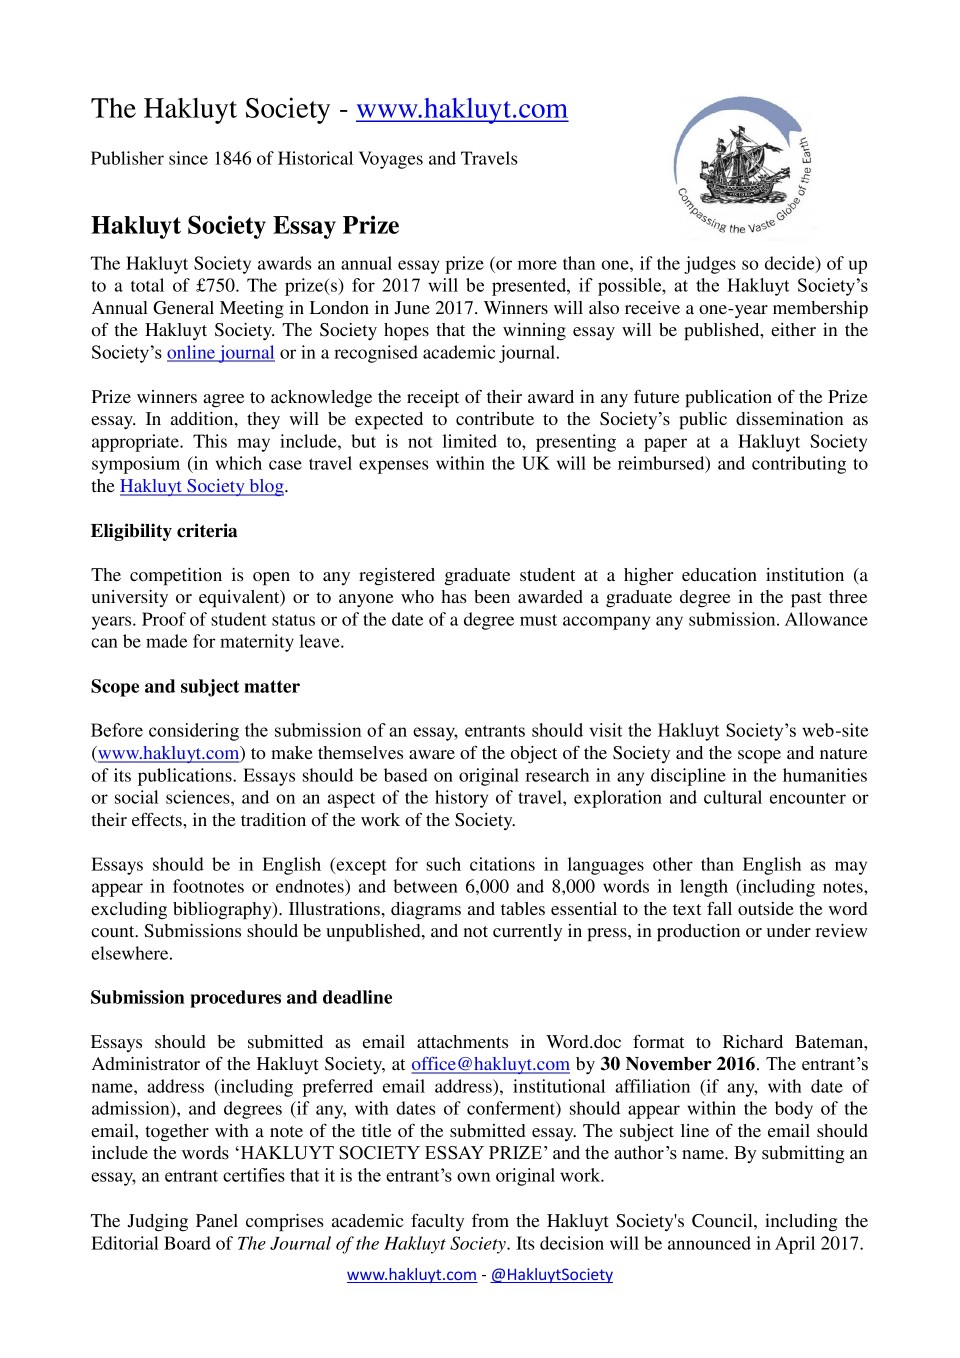 017 Travel Essay Hakluyt Society Prize The Example Text Journal Sample Tagalog Photo Examples Experience Pdf Writing Unique Definition Submissions 960